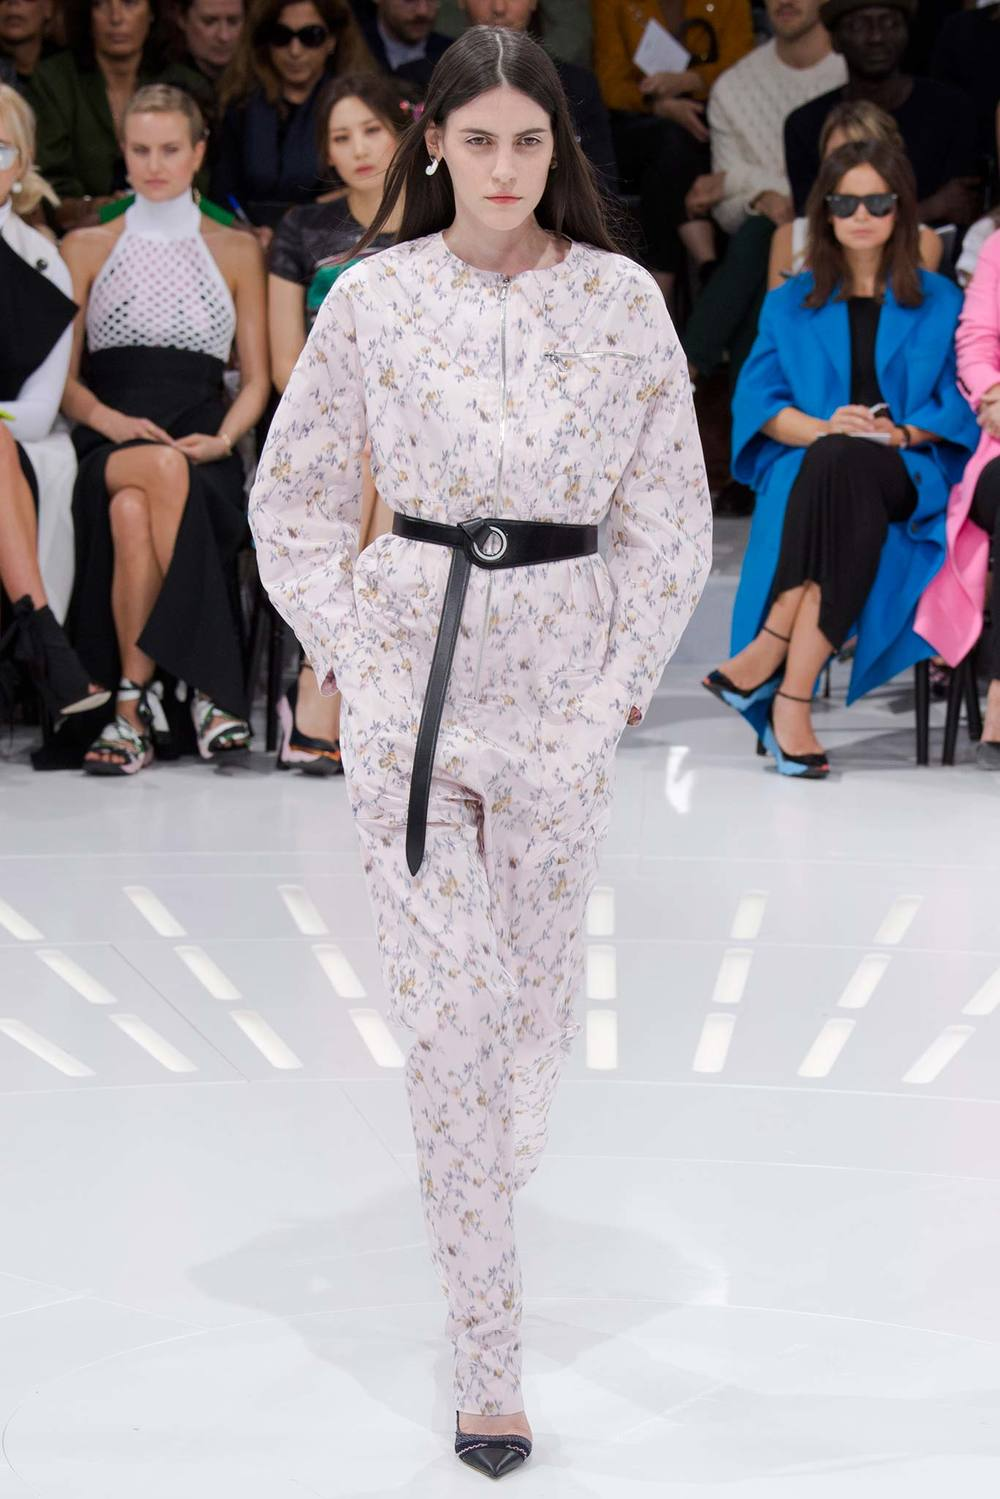 Christian Dior s/s 2015, look 15. Source: Style.com